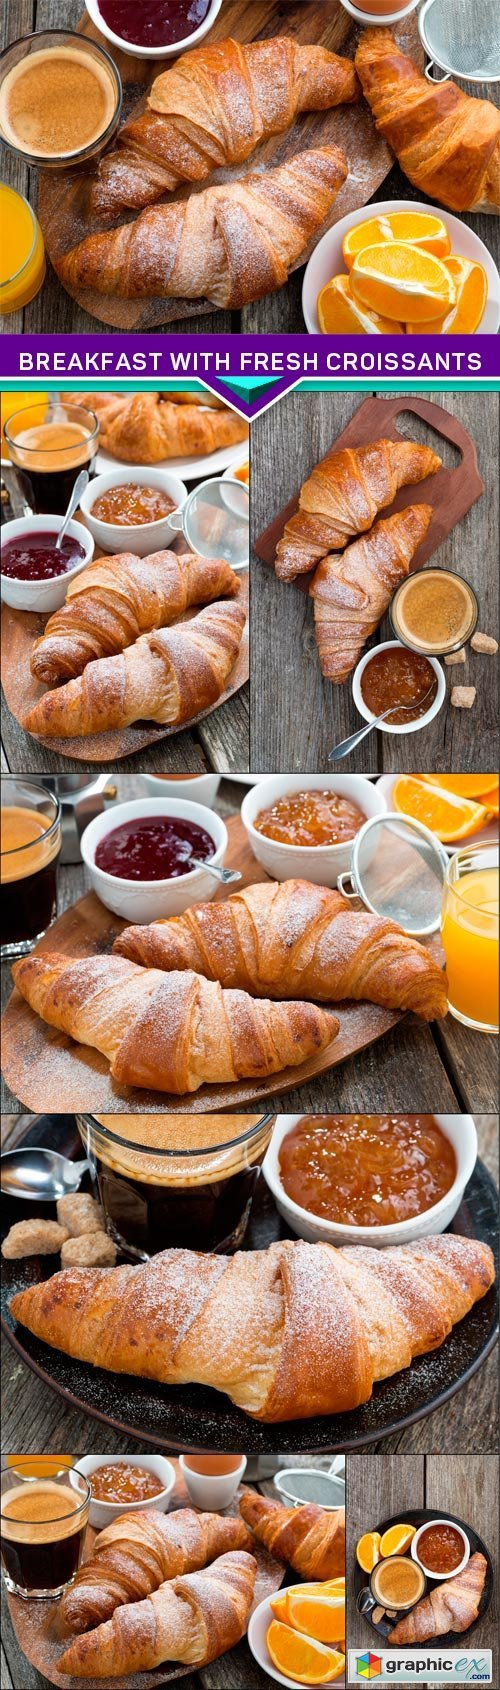 Breakfast with fresh croissants 7x JPEG